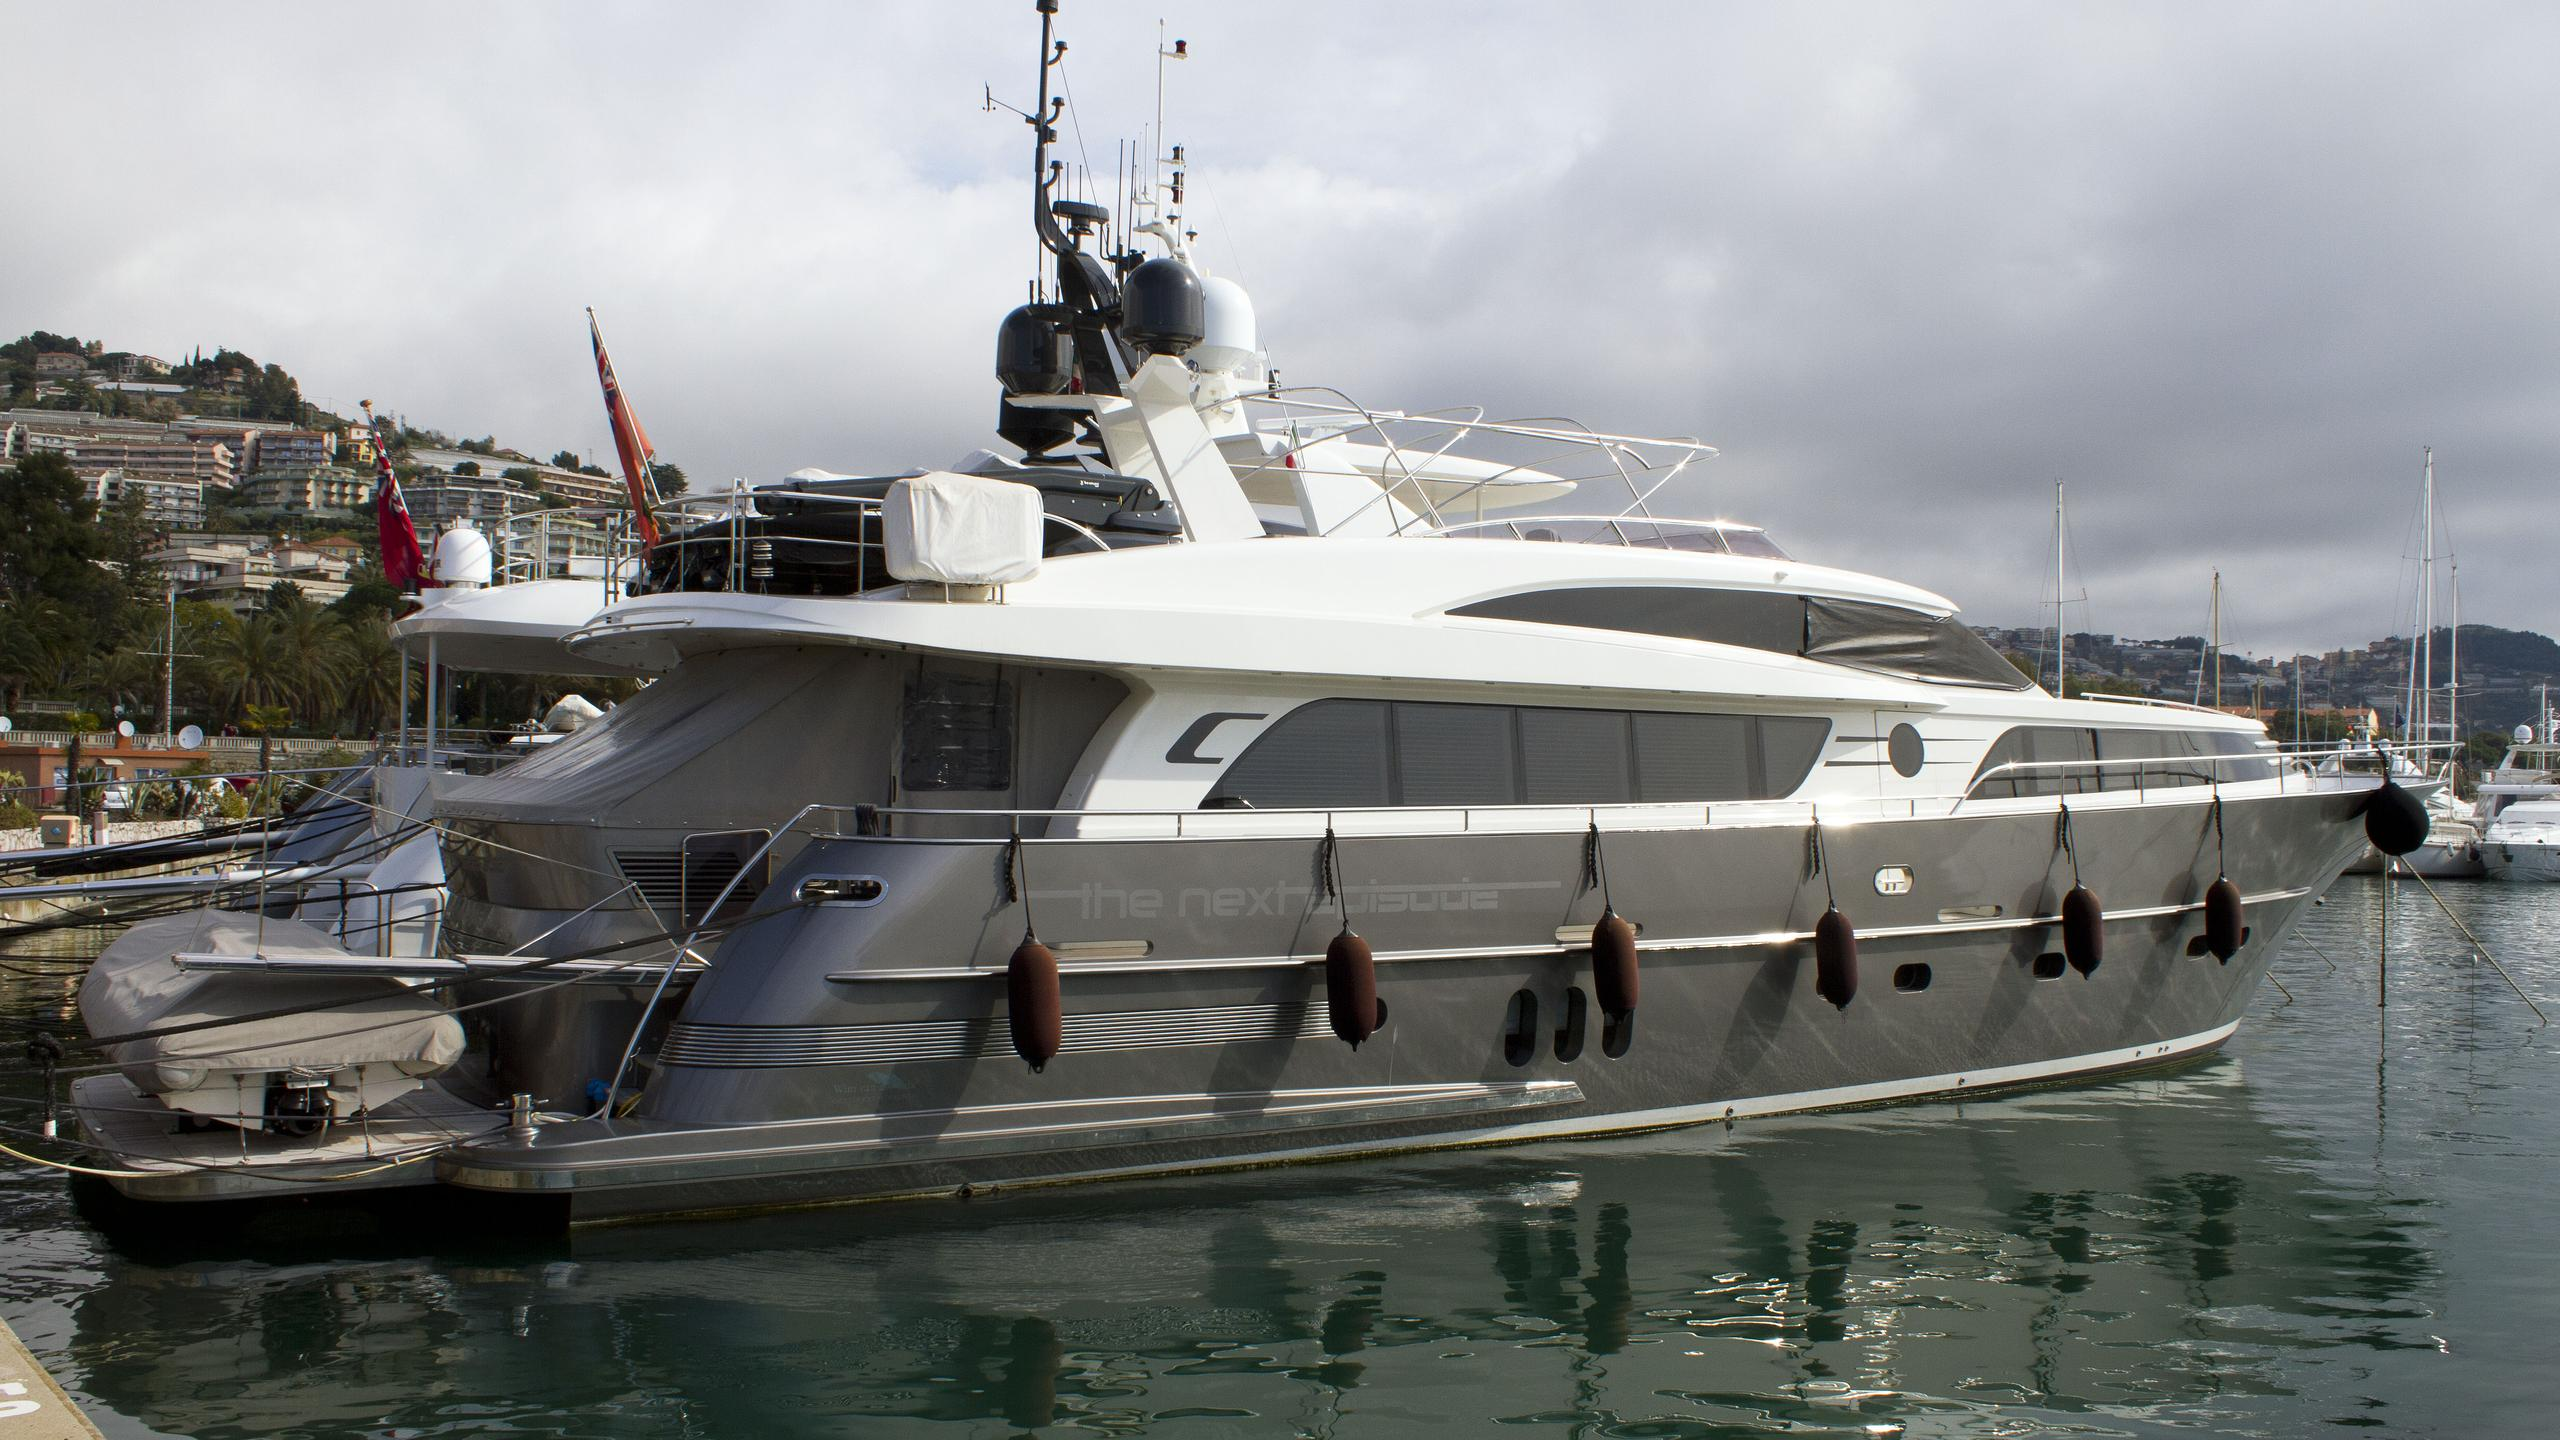 the-next-episode-motor-yacht-van-der-valk-2014-26m-stern